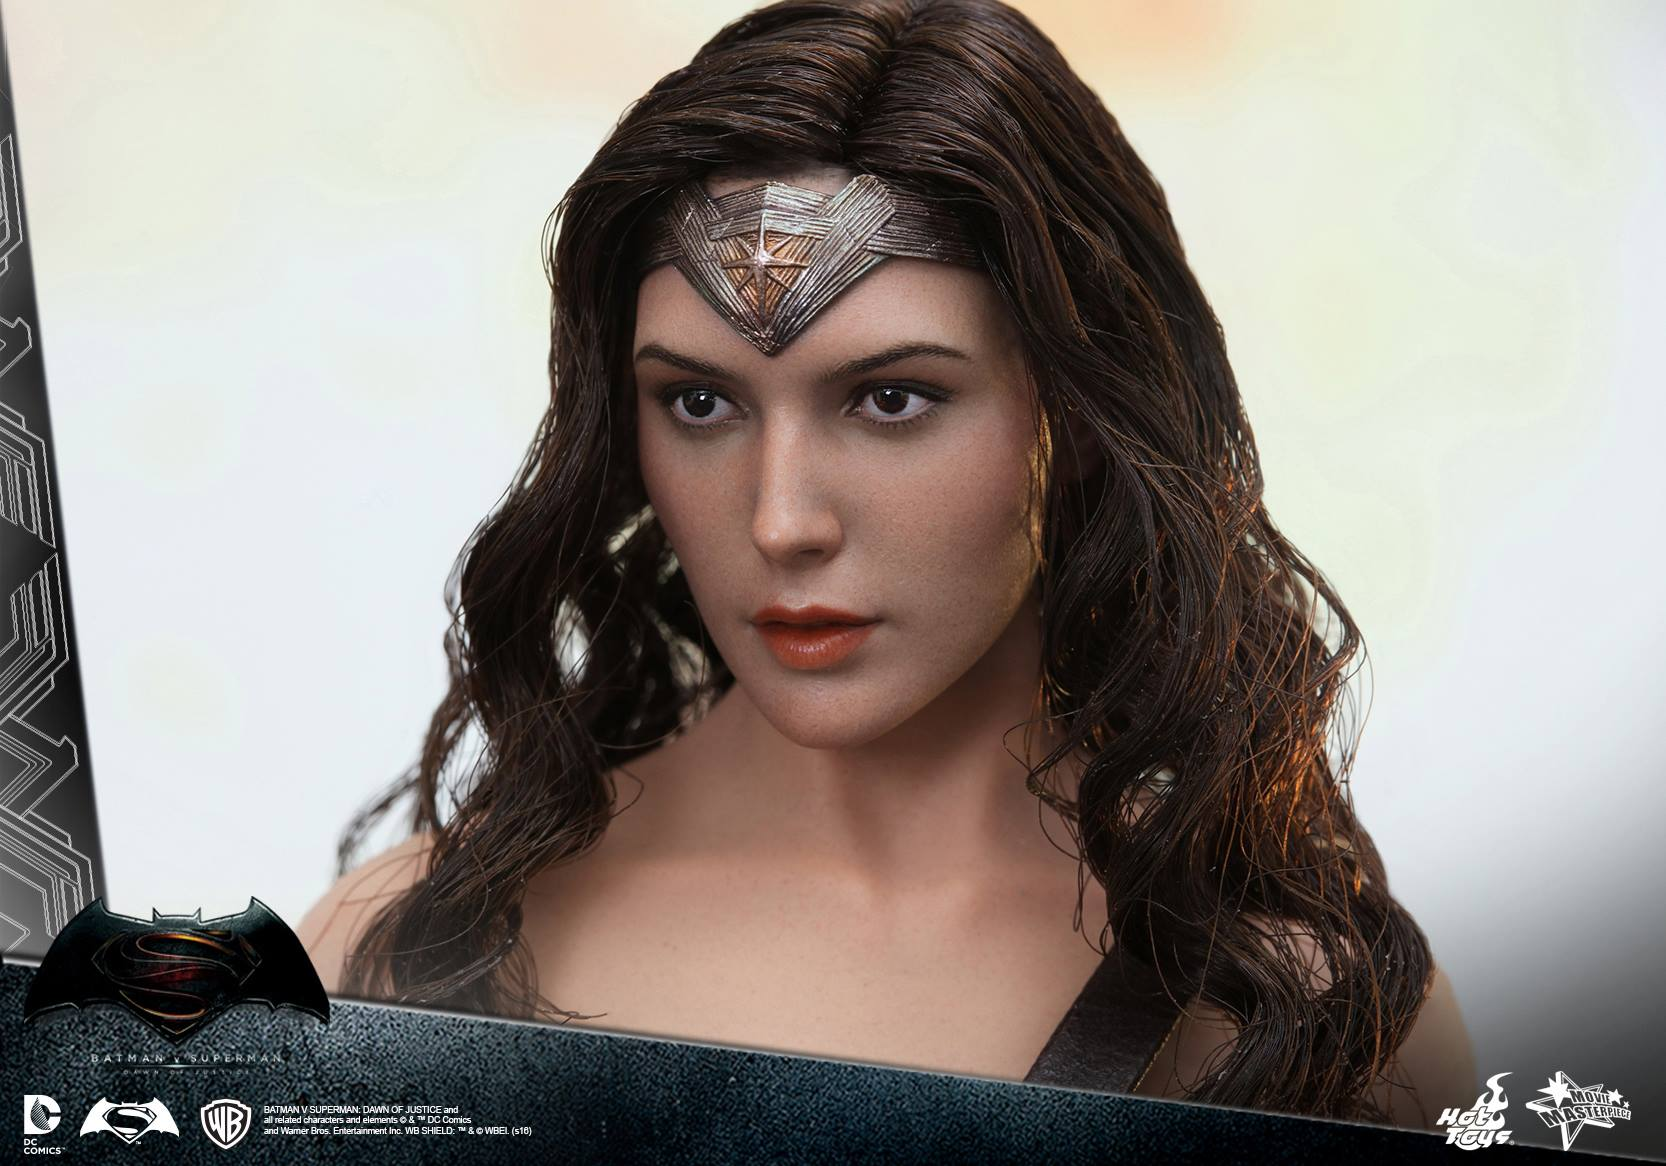 Spada Wonder Woman Batman V Superman Wonder Woman Figure By Hot Toys The